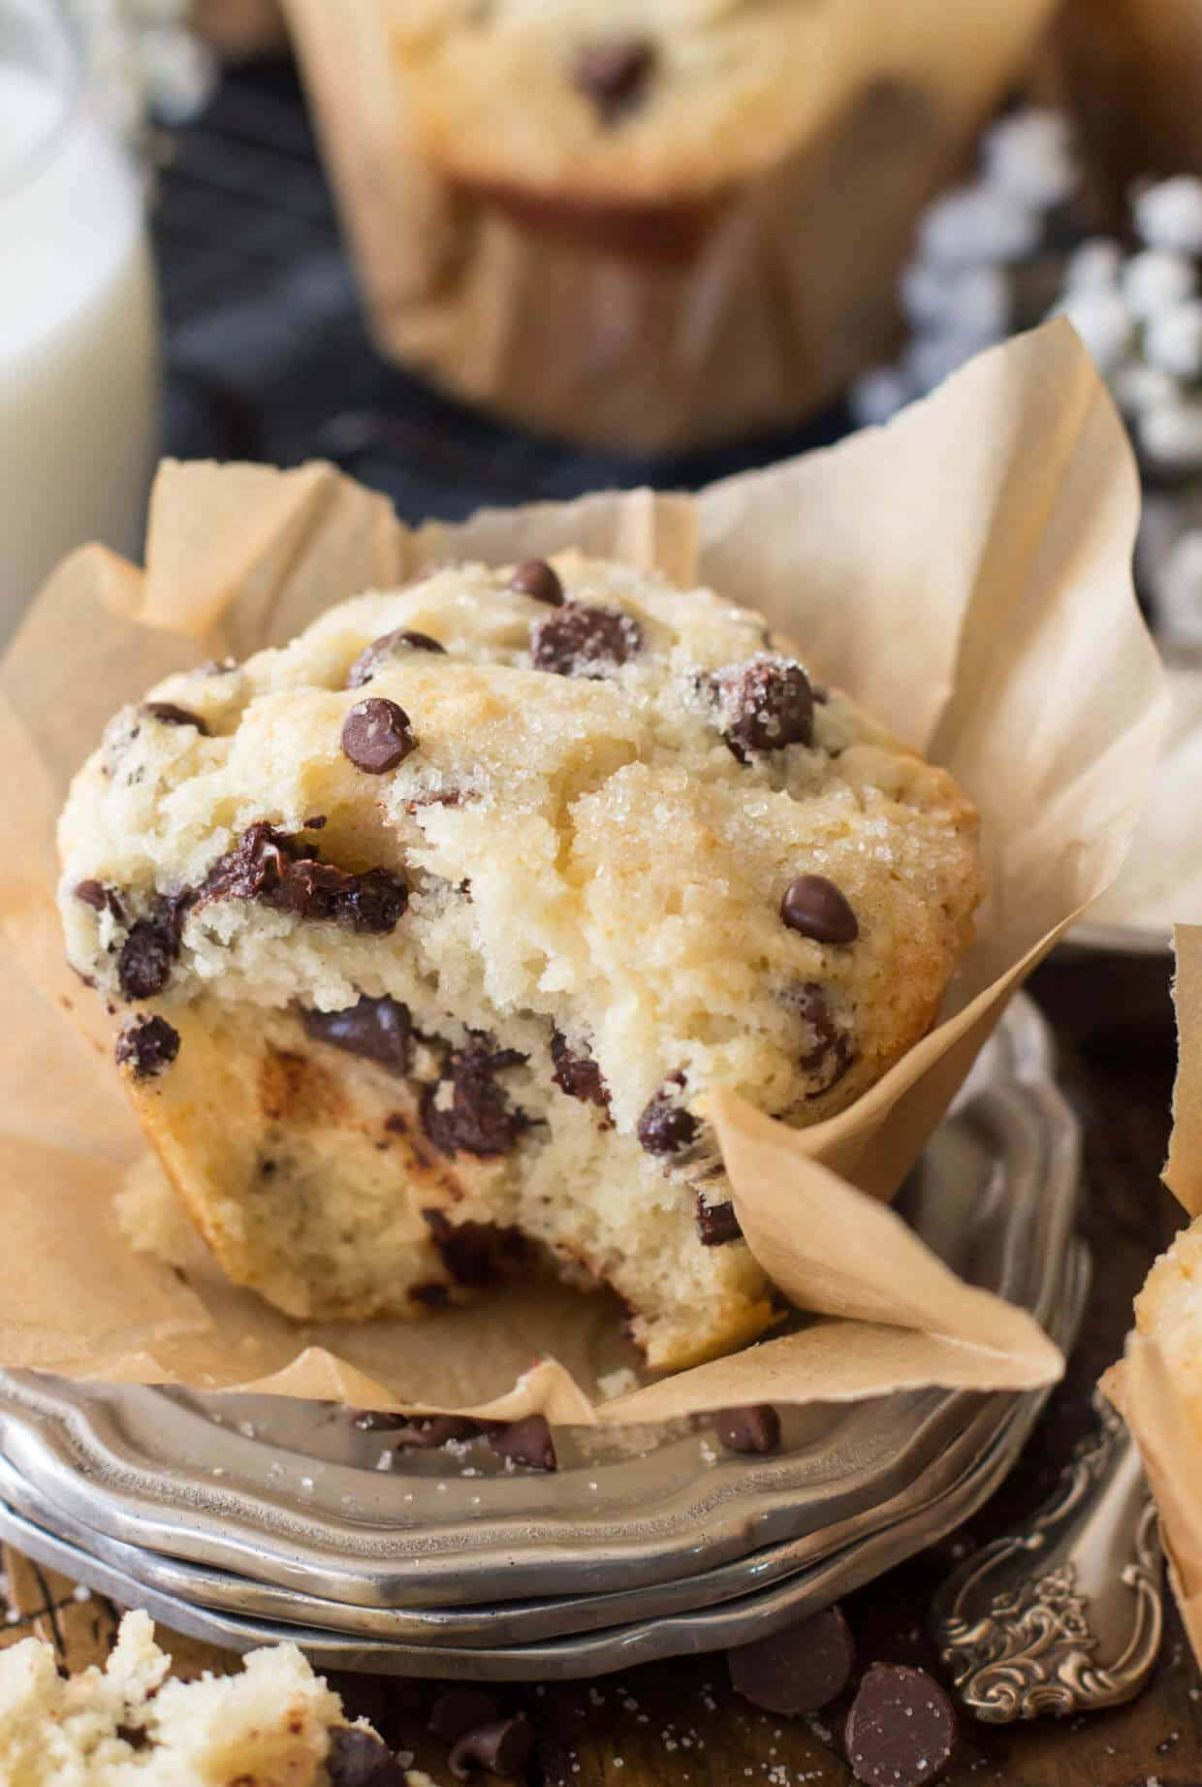 Bakery Style Chocolate Chip Muffins - Recipes Chocolate Chip Muffins